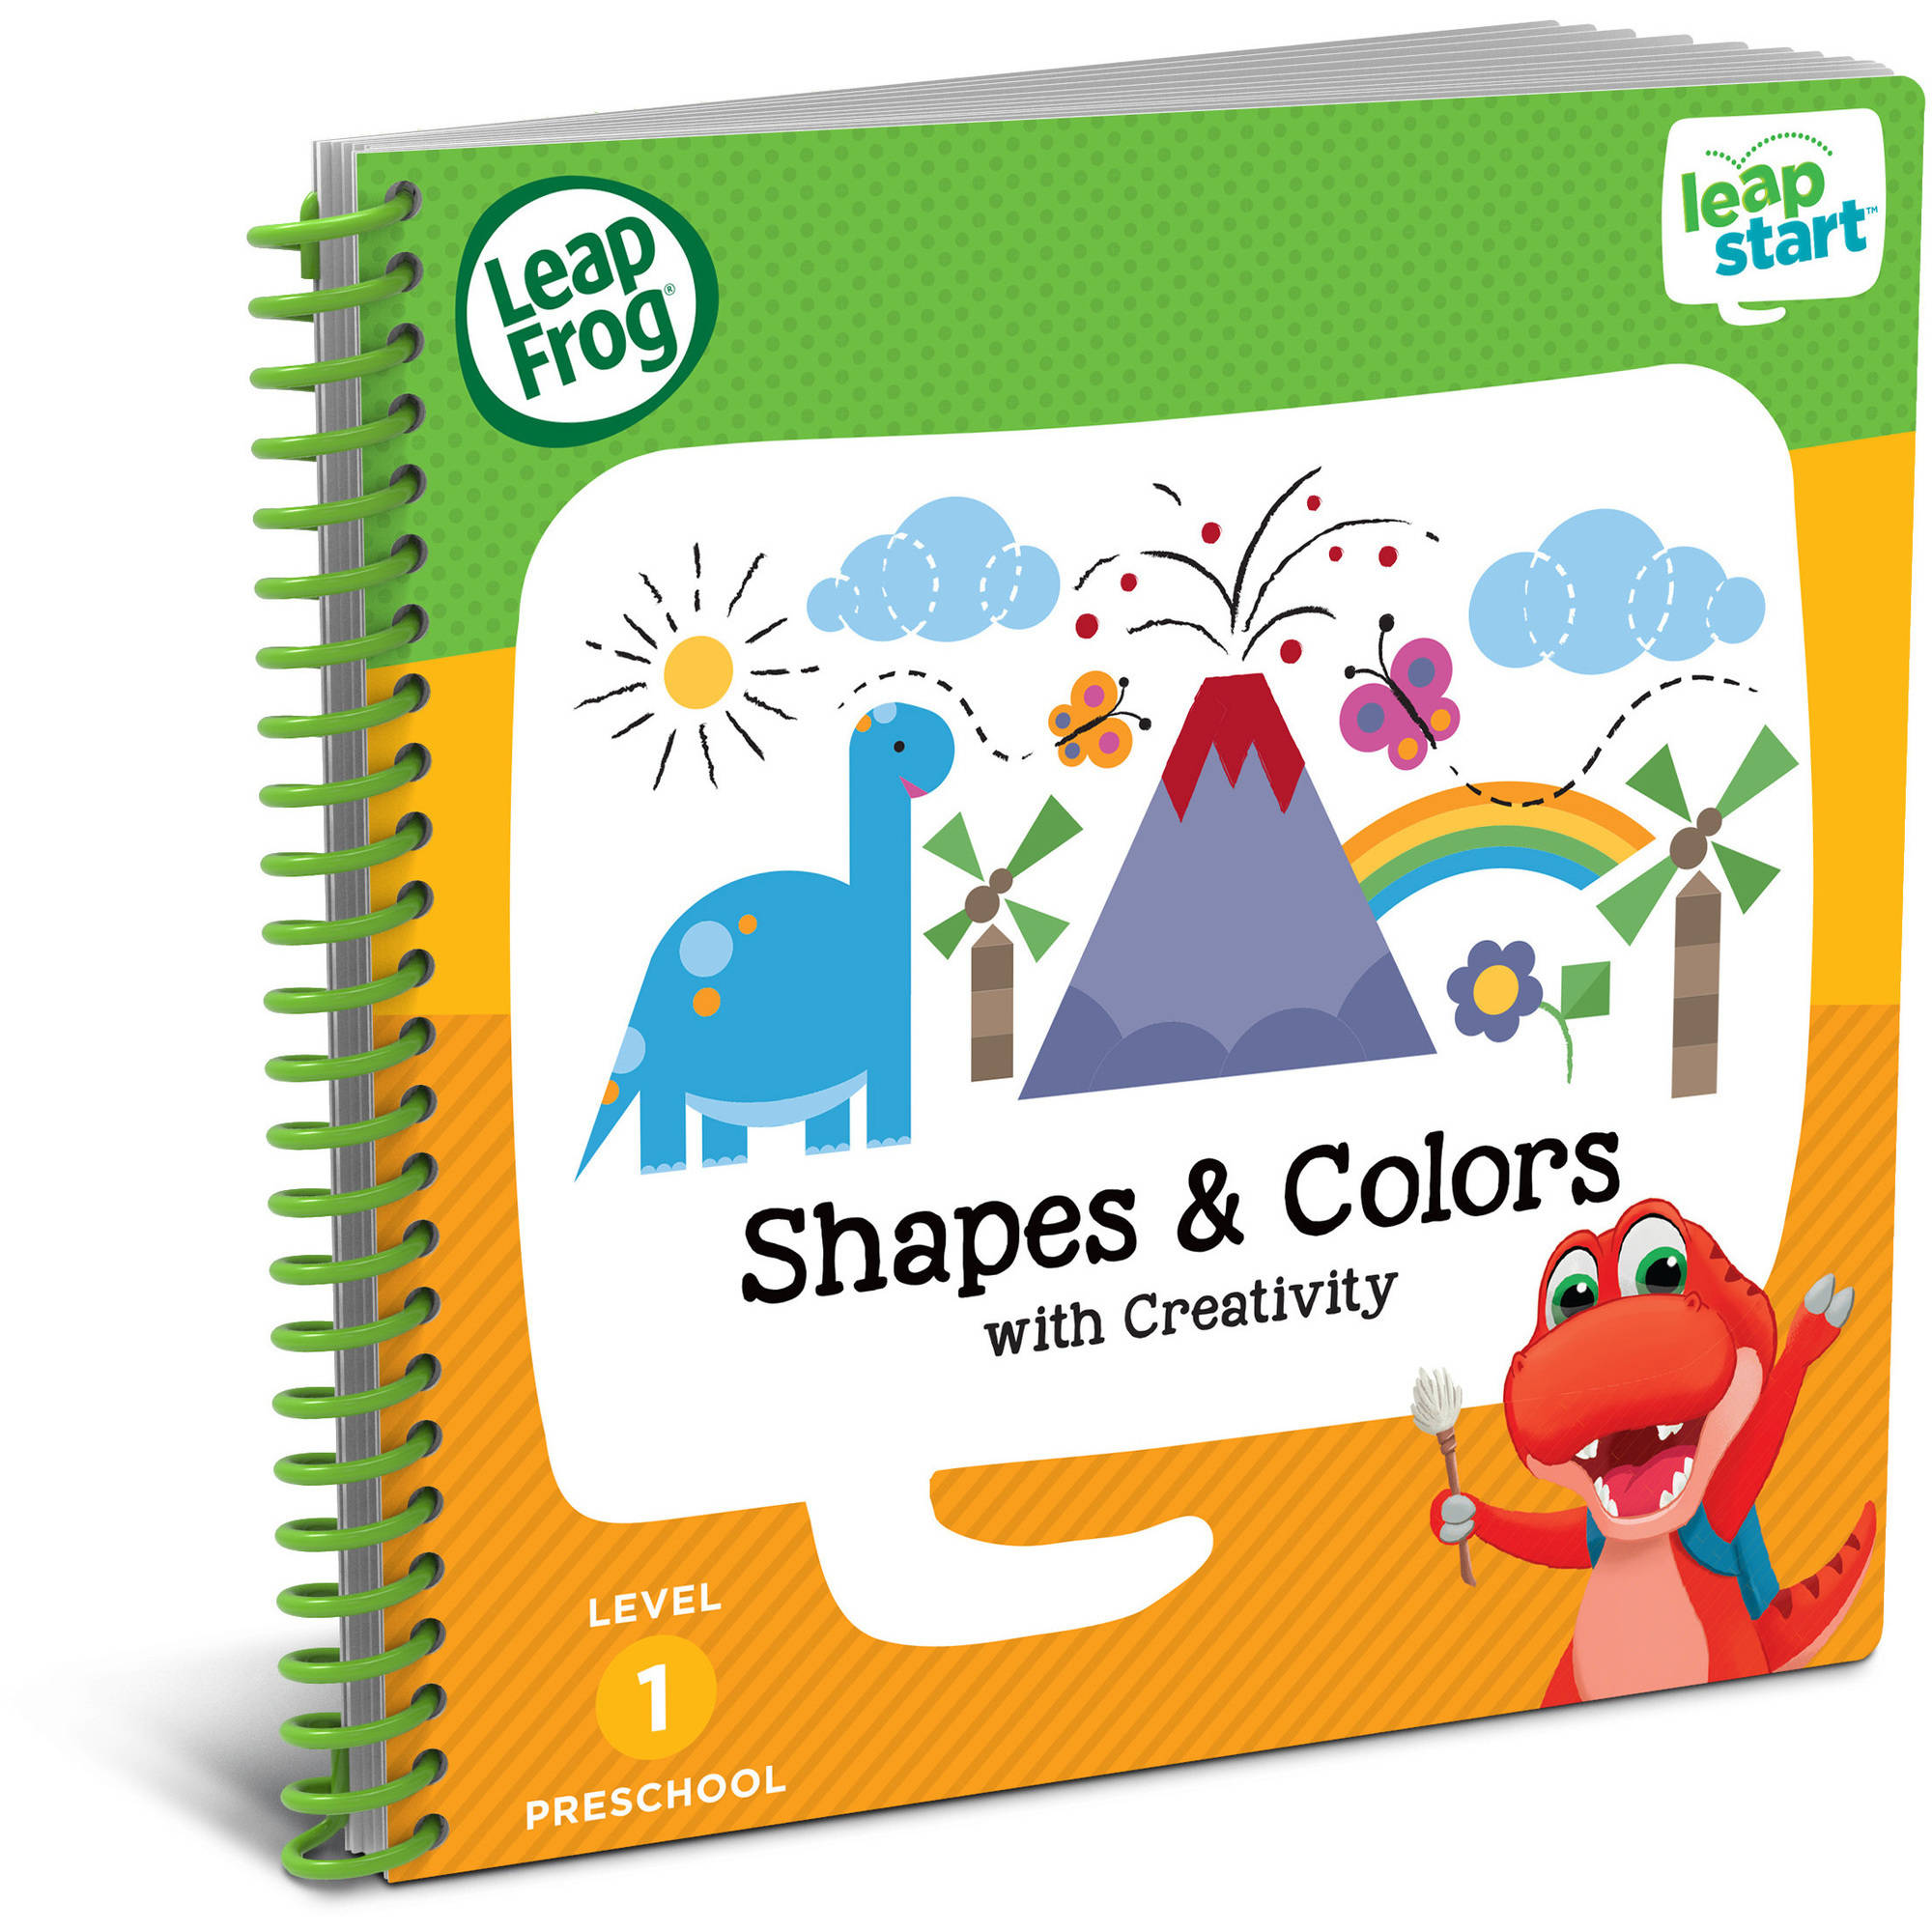 LeapFrog LeapStart Preschool Activity Book: Shapes & Colors and Creativity